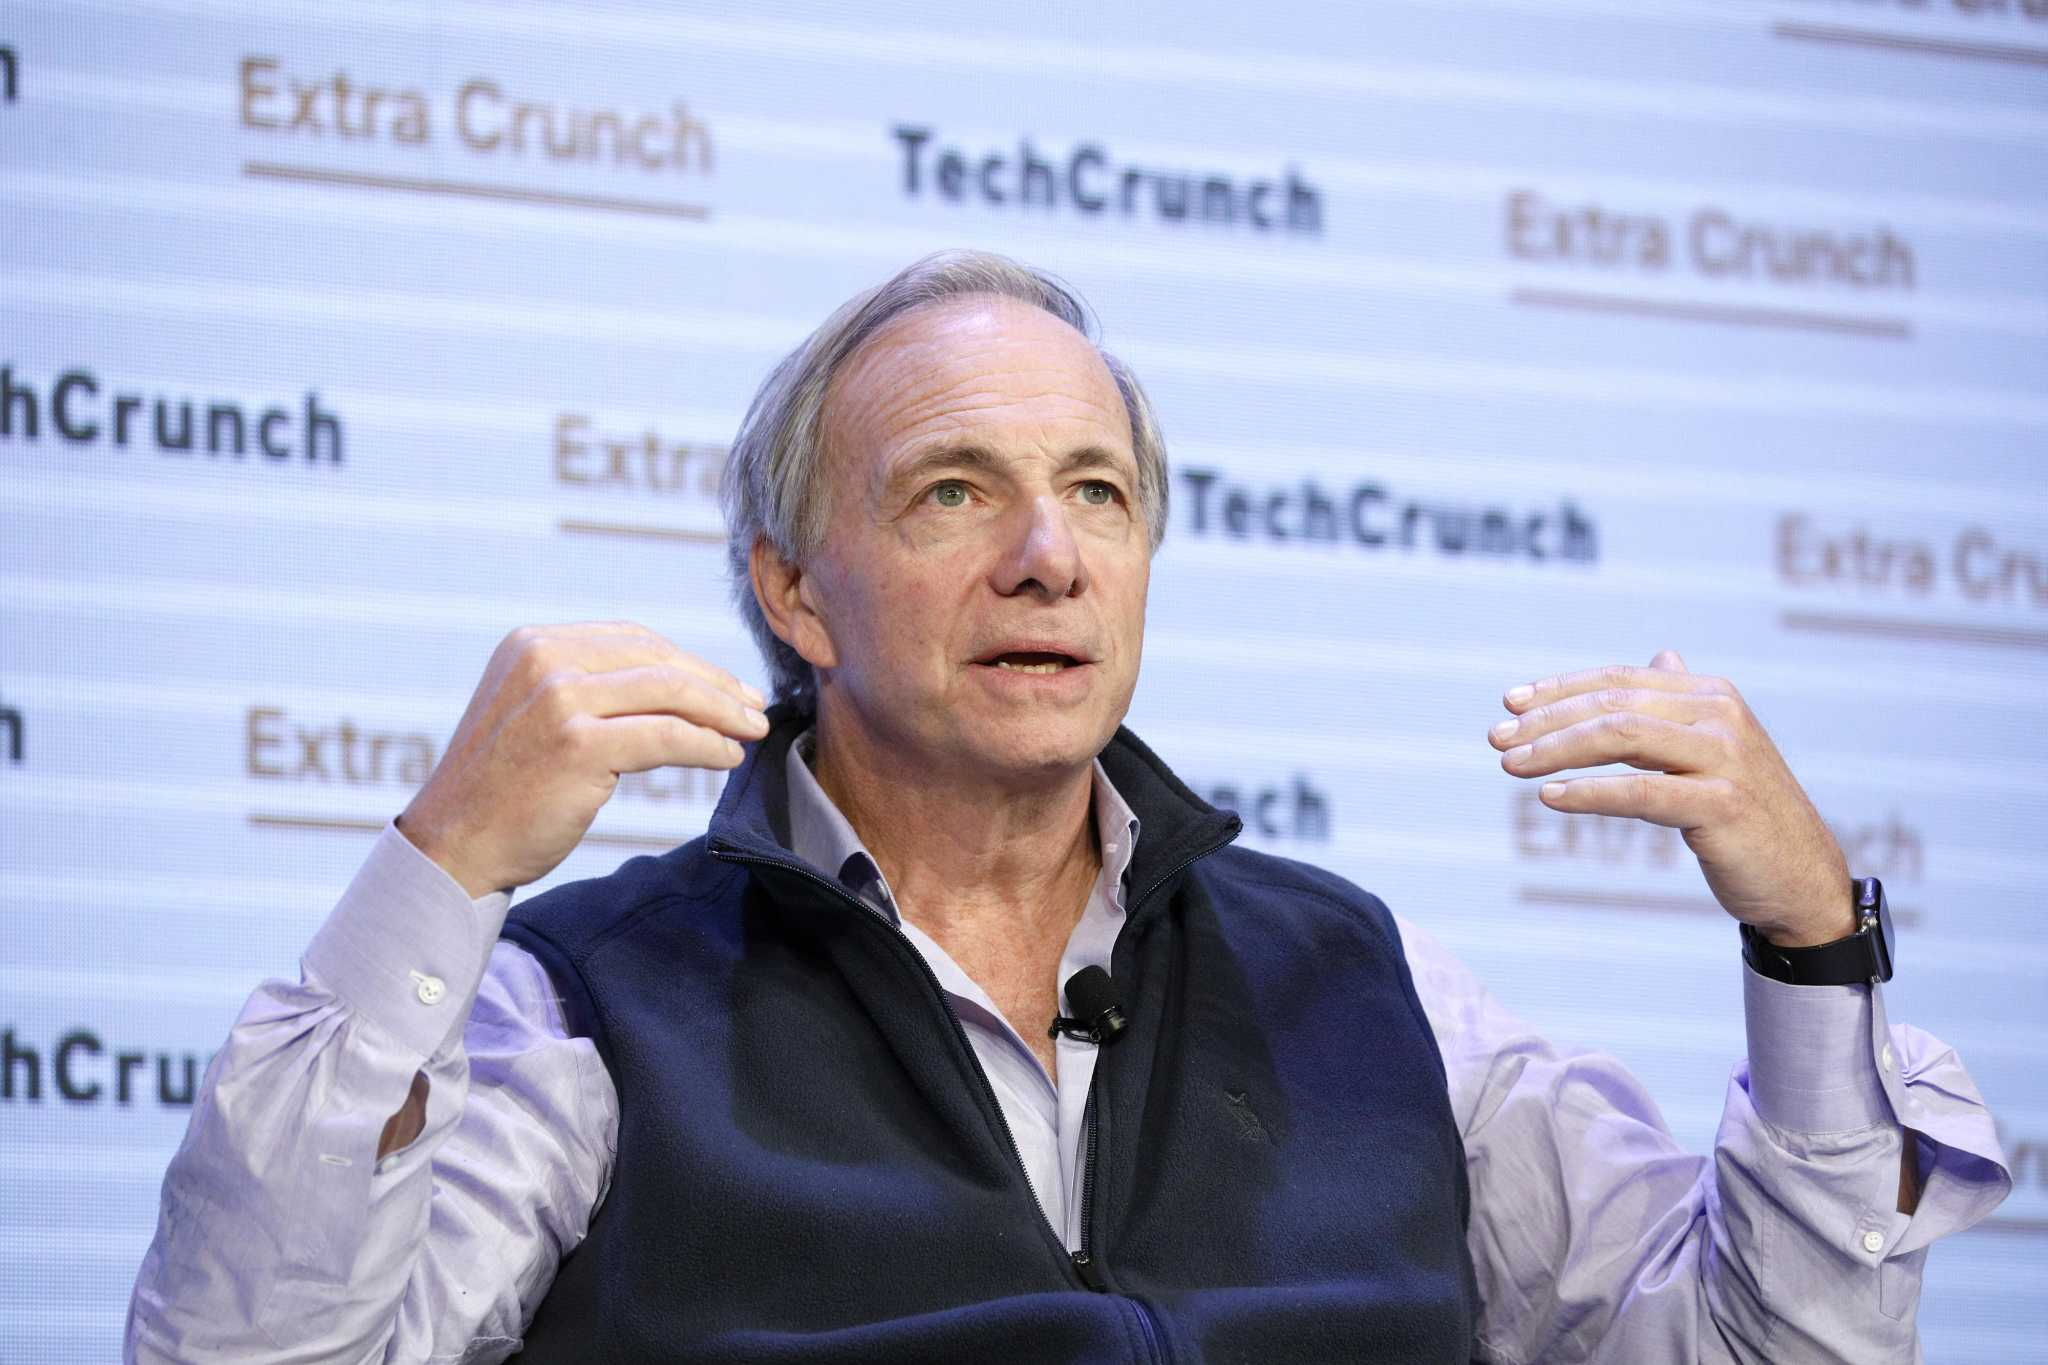 Salary battle prompts new questions about privacy rules for Dalio education partnership